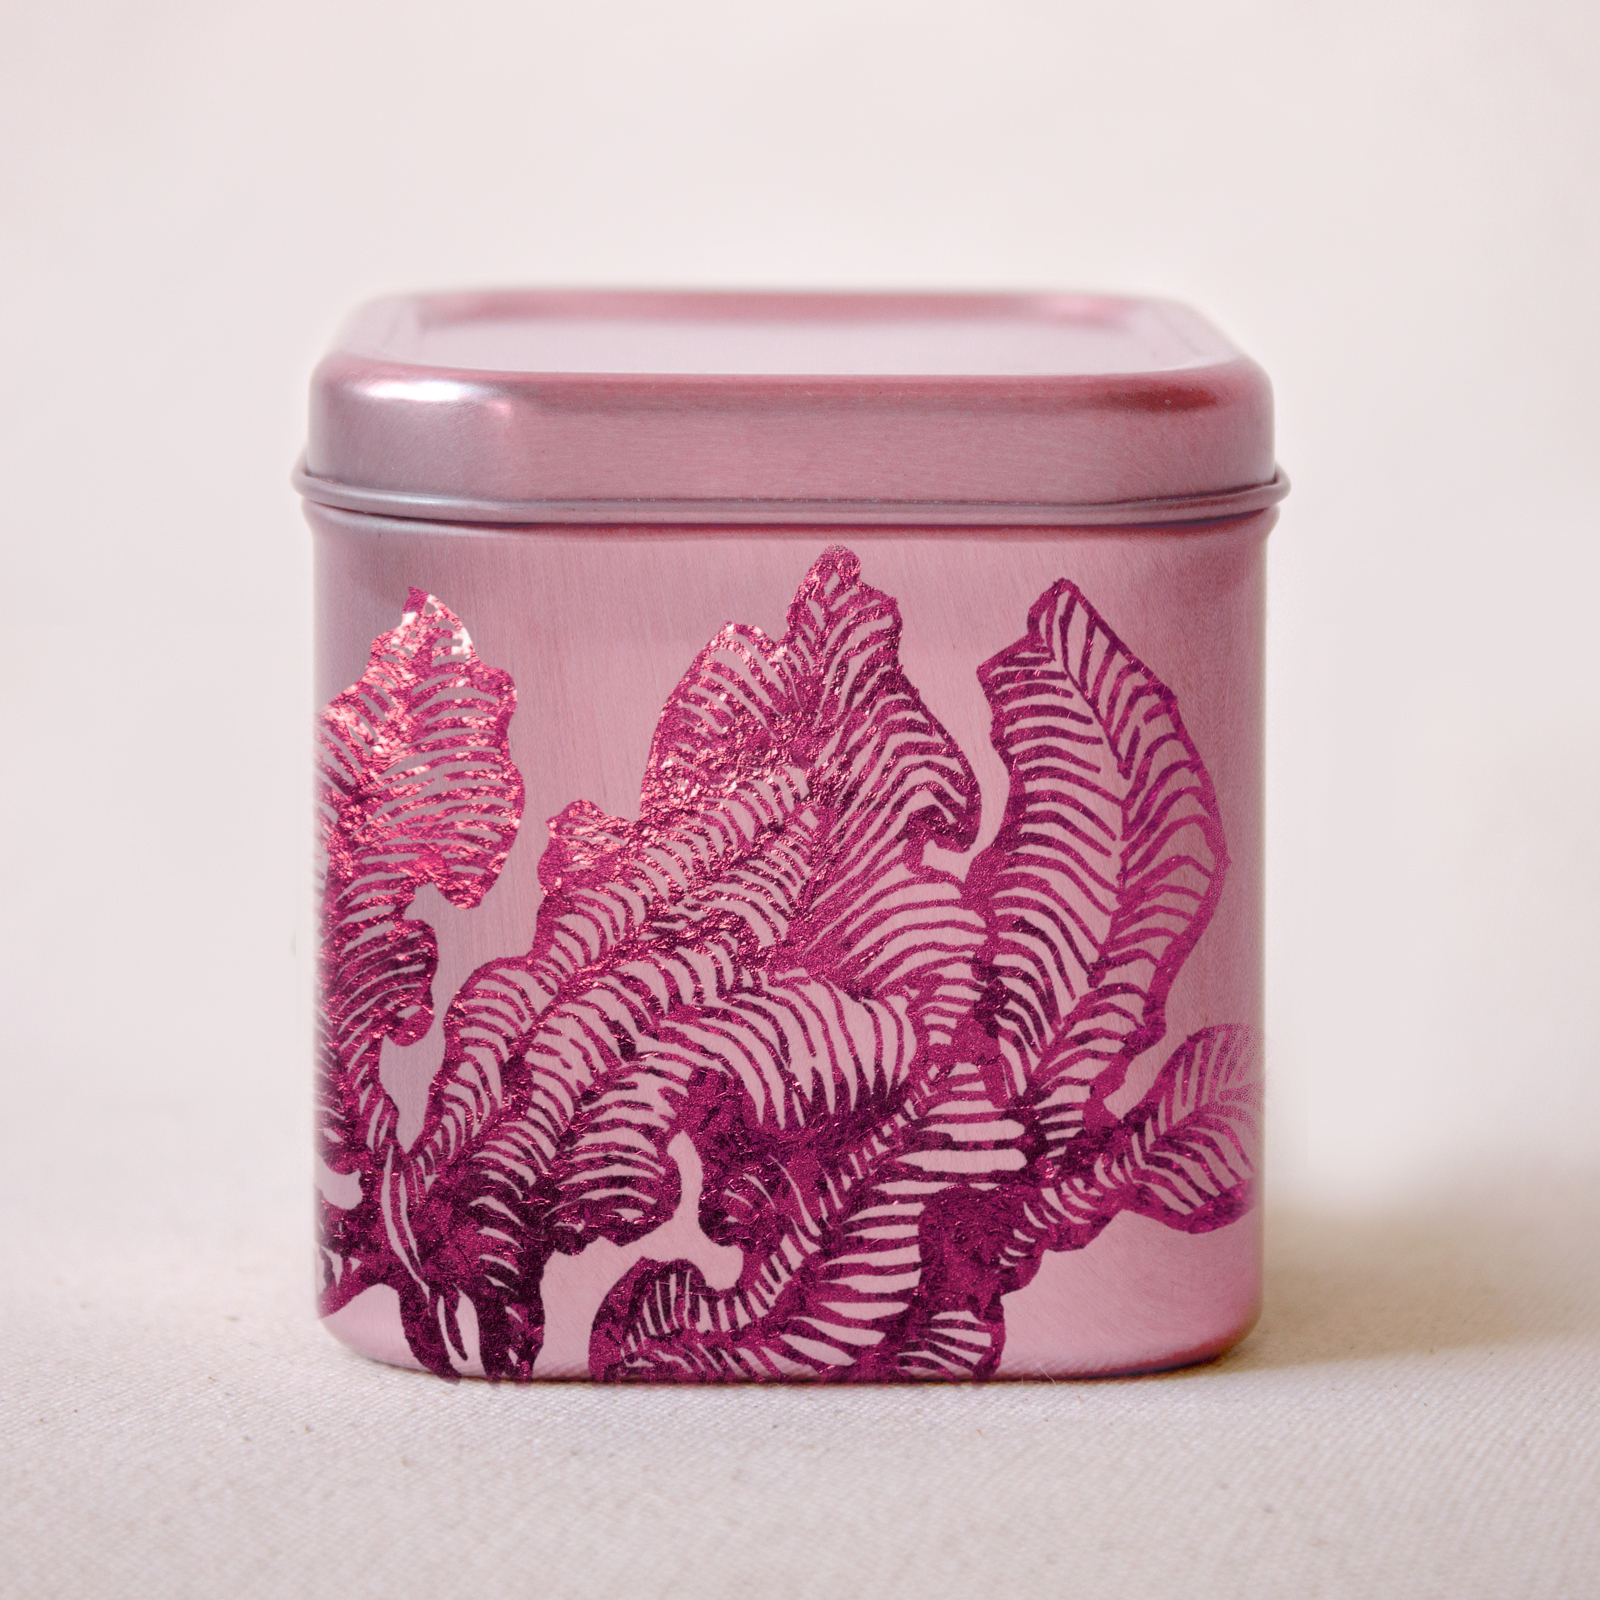 Fairytale-themed magenta metallic package illustration by Laura Dreyer.